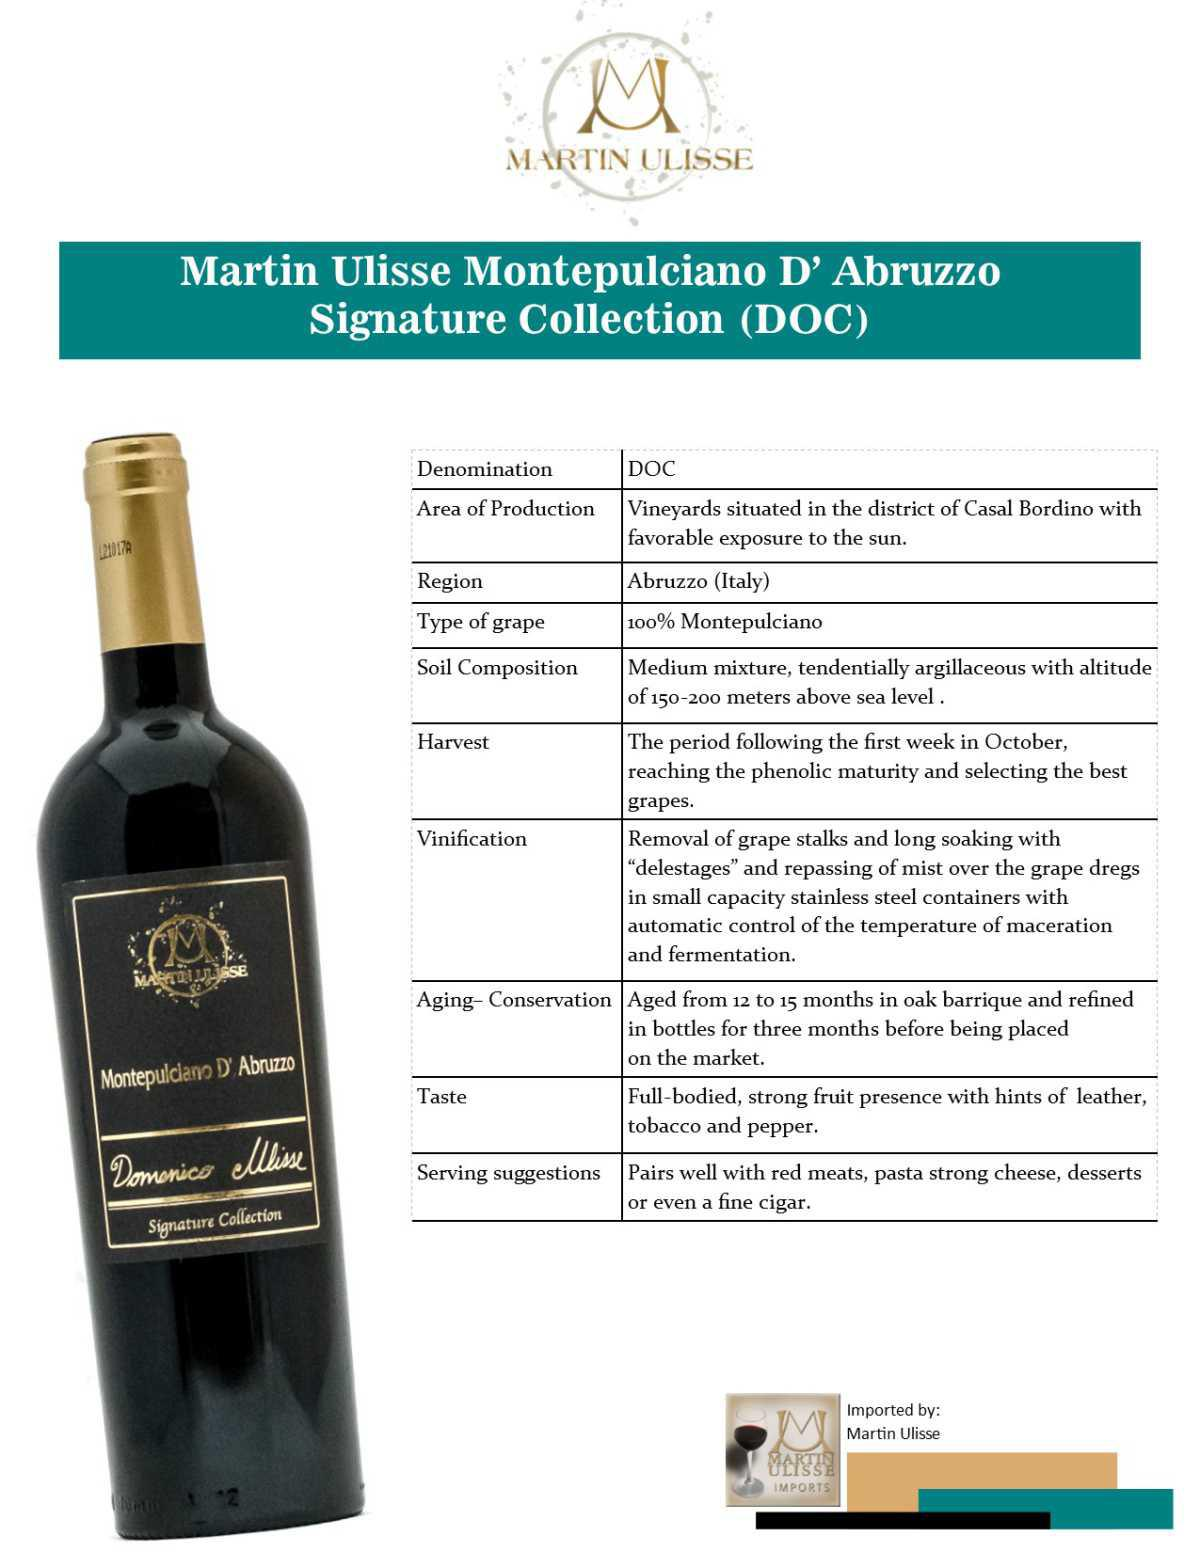 Martin Ulisse Montepulciano d'Abruzzo Signature Collection (DOC)